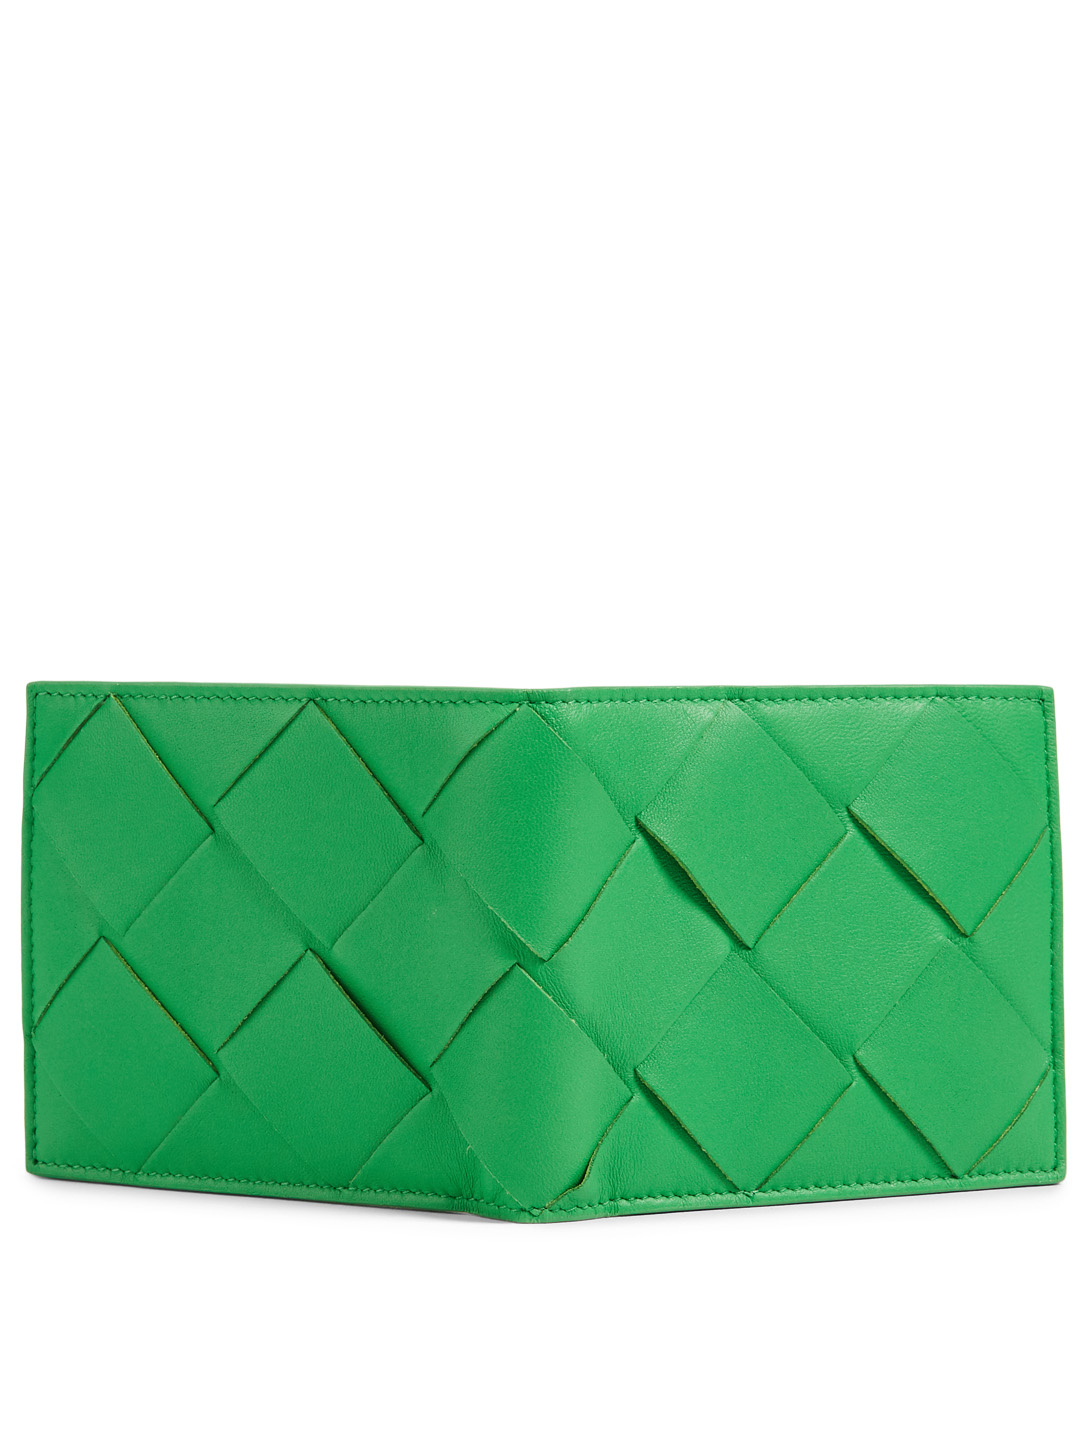 BOTTEGA VENETA Intrecciato Leather Bifold Wallet Men's Green